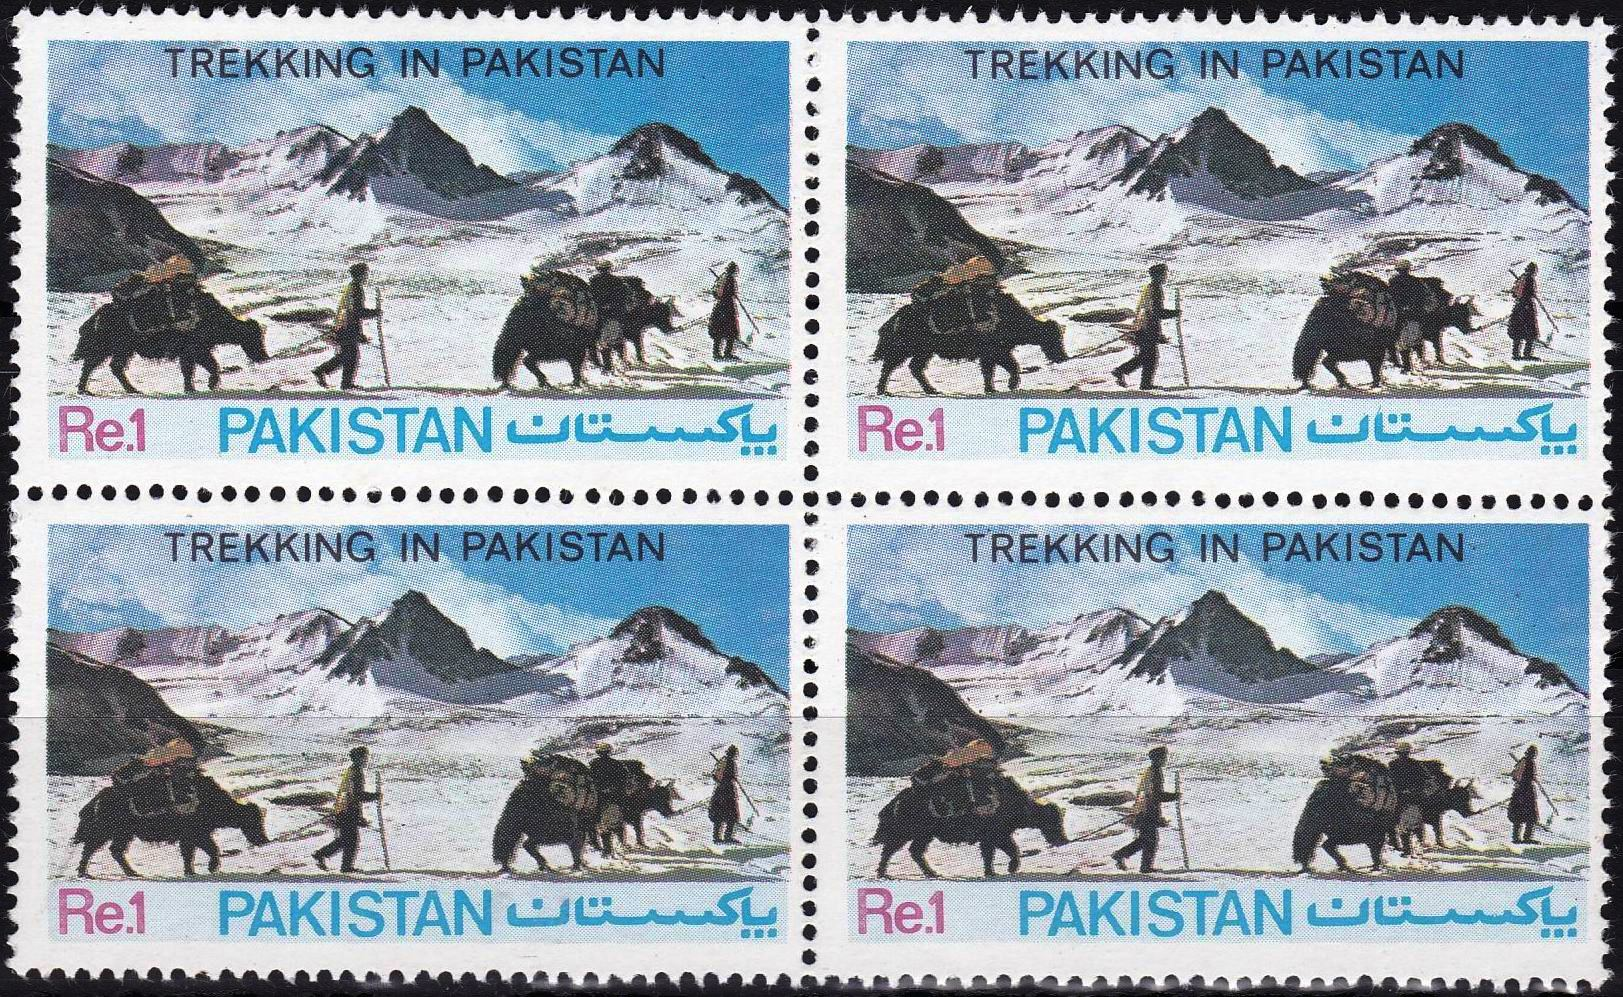 Pakistan Stamps 1983 Trekking in Pakistan